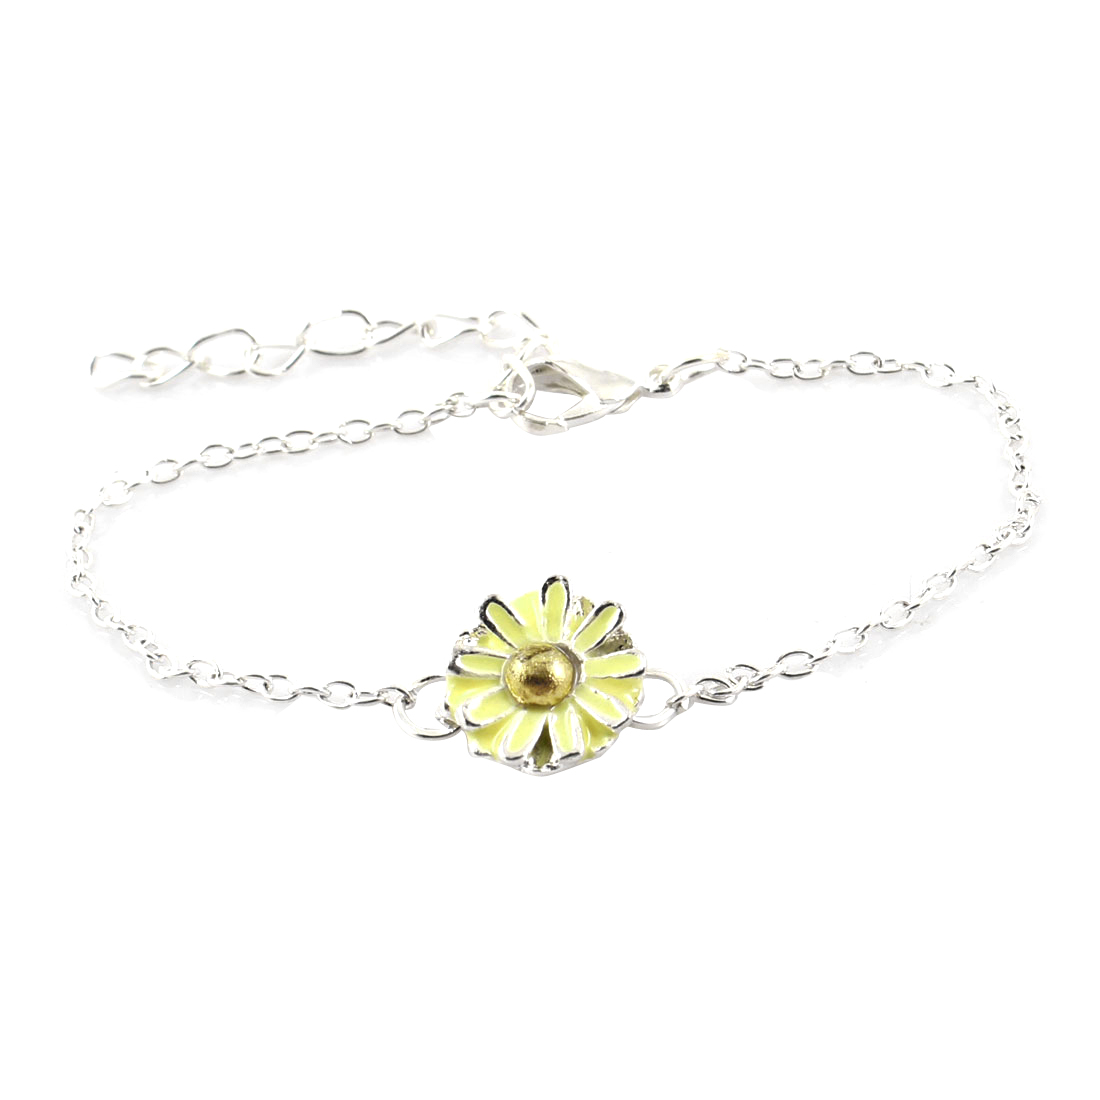 Yellow Daisy Ornament Silver Tone Metal Chain Lobster Clasp Wrist Bracelet